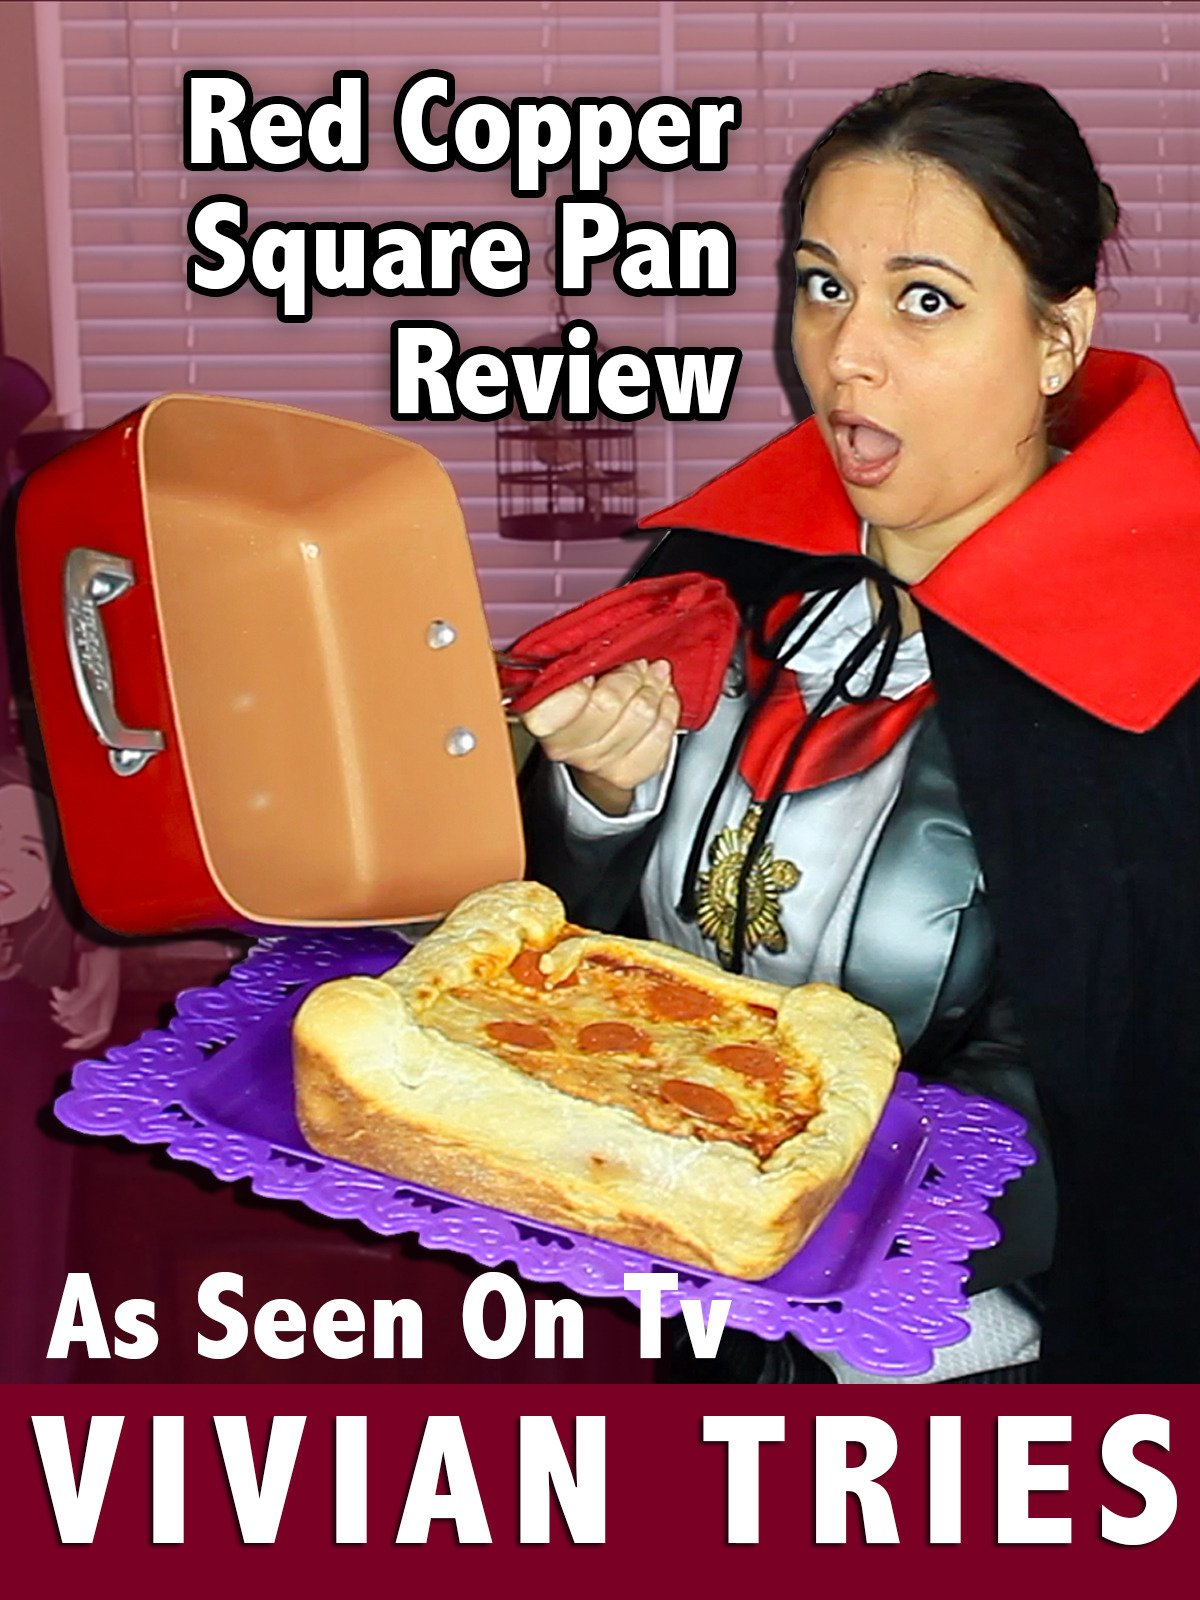 Review: Red Copper Square Pan Review: As Seen On Tv